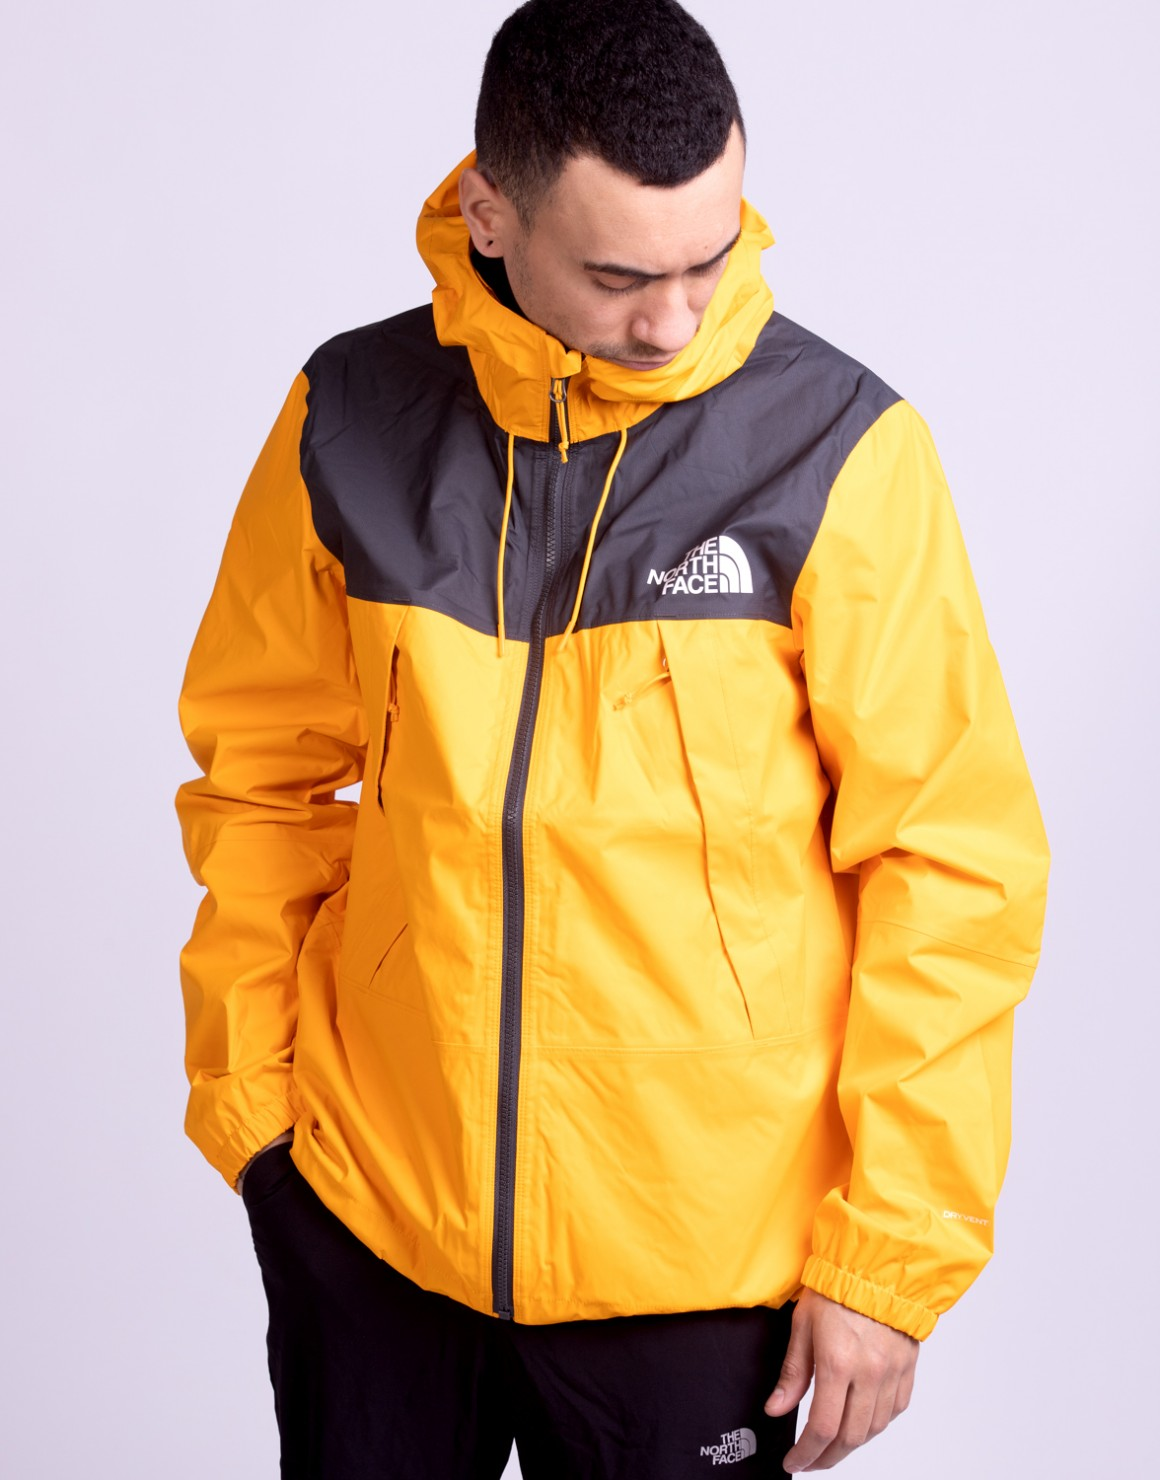 M 1990 Mountain Jacket